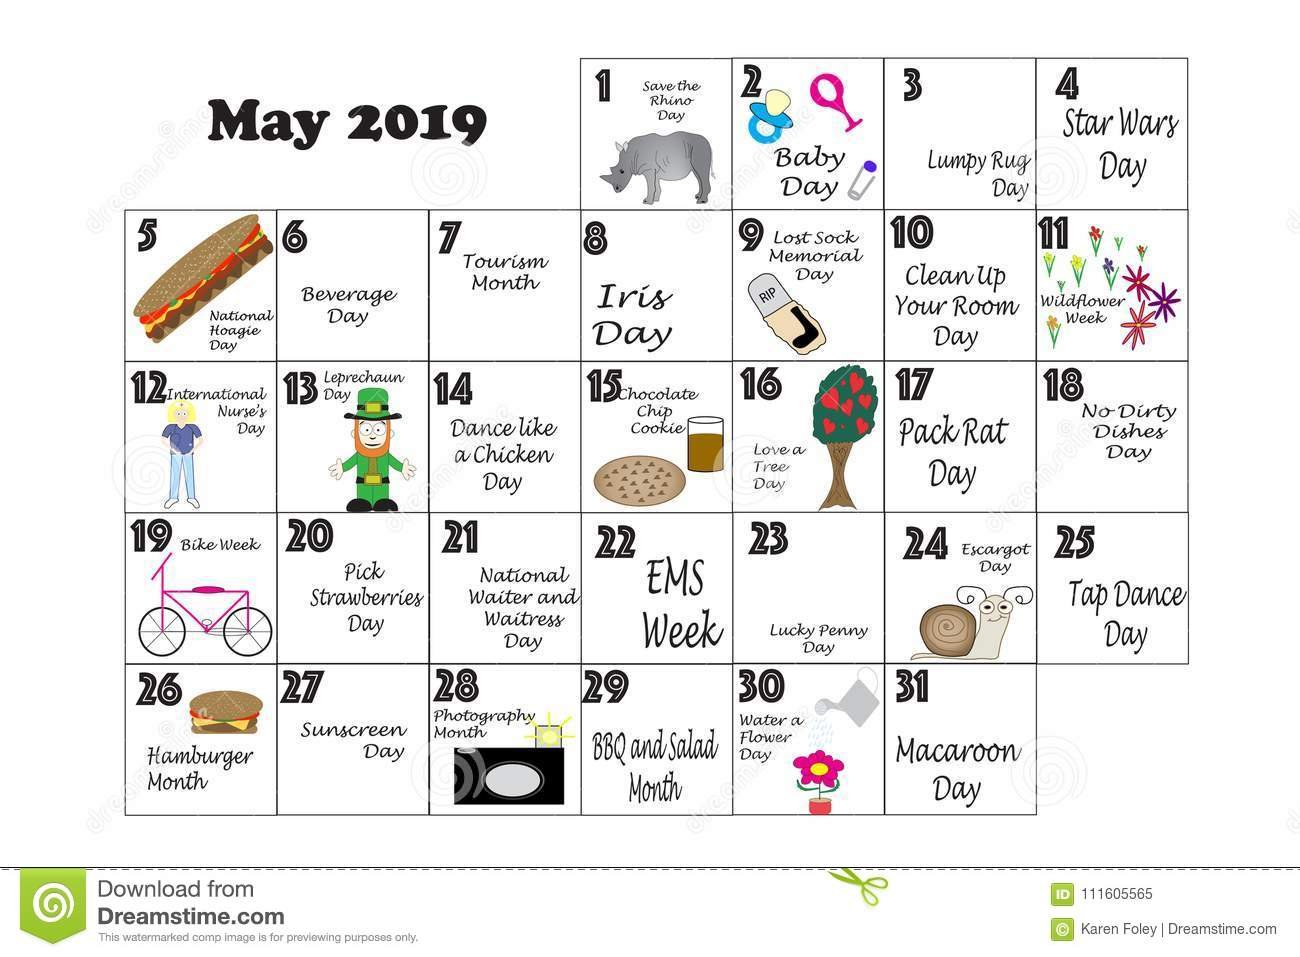 May 2019 Quirky Holidays And Unusual Events Stock Illustration Calendar 2019 Of Events